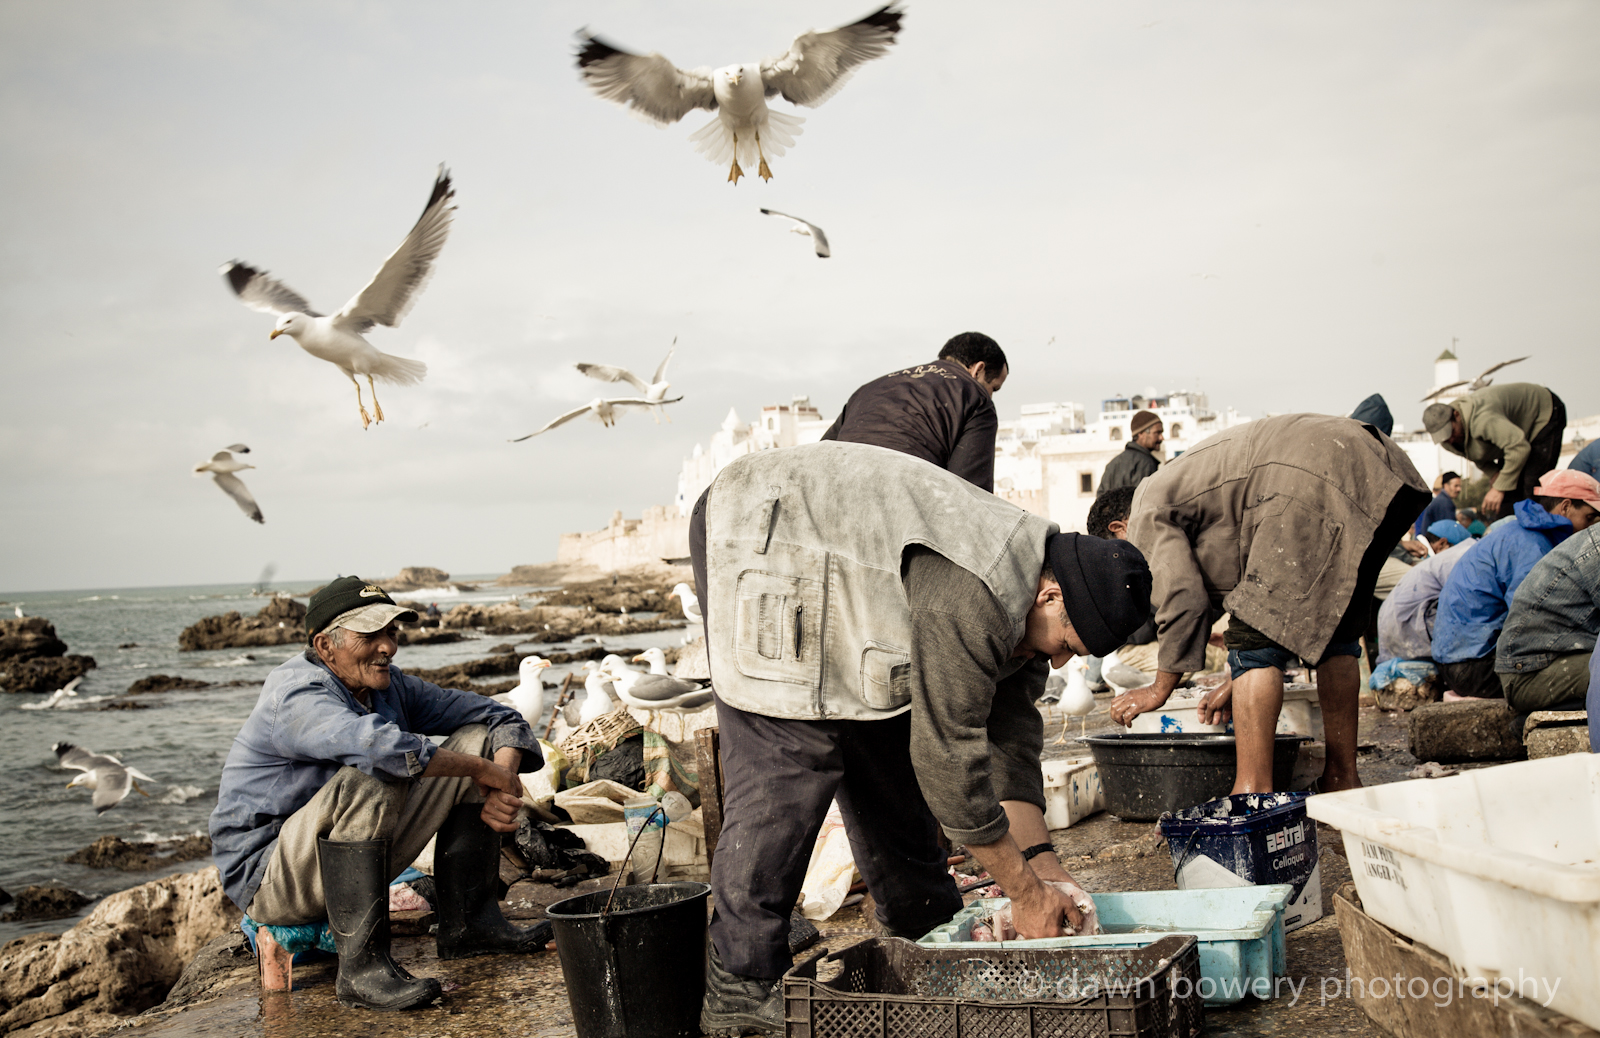 essaouira fisherman photograph